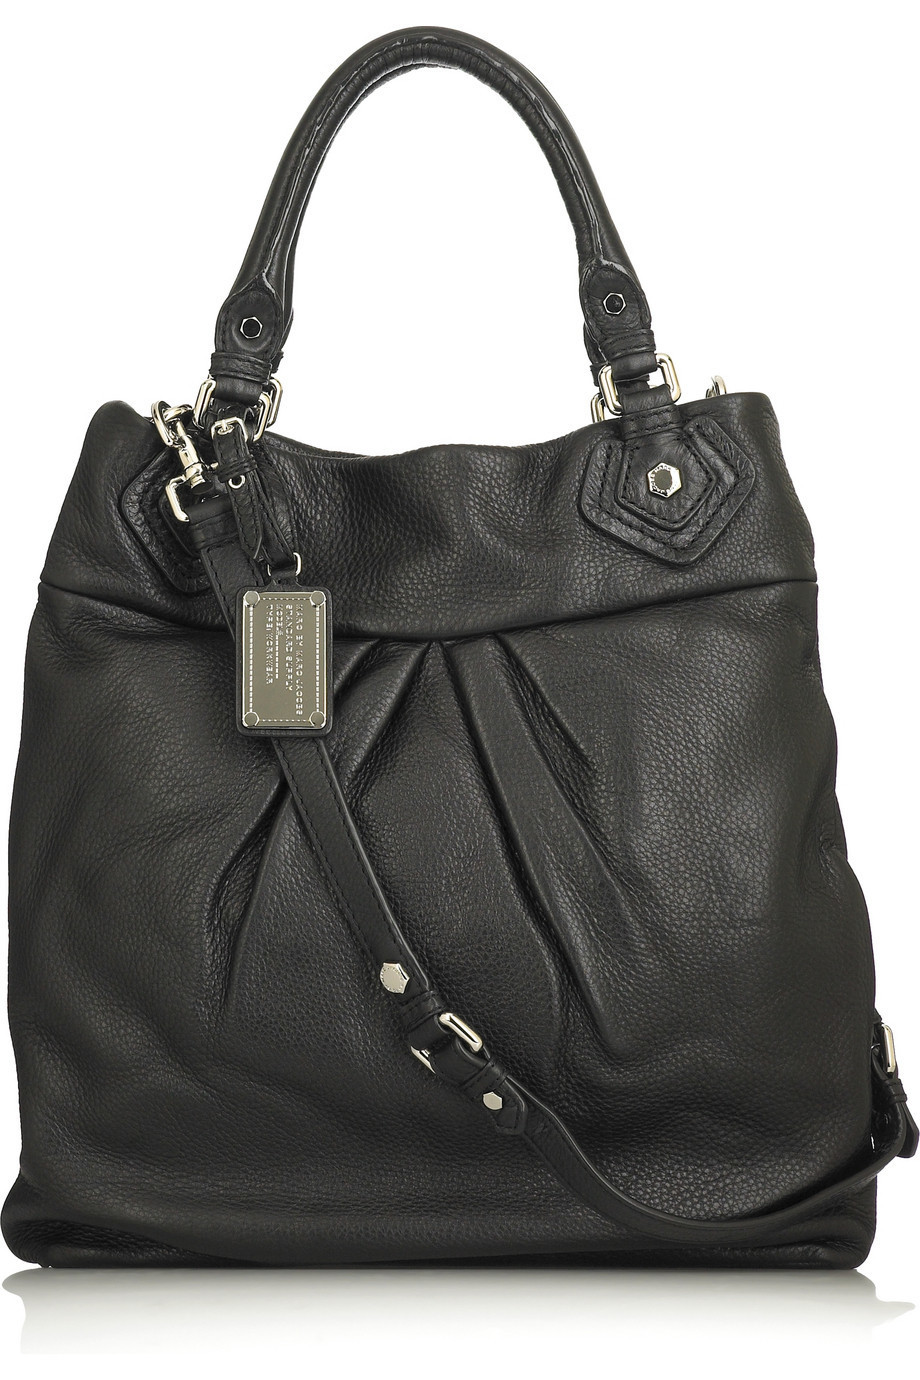 Marc by Marc Jacobs City leather tote | NET-A-PORTER.COM from net-a-porter.com